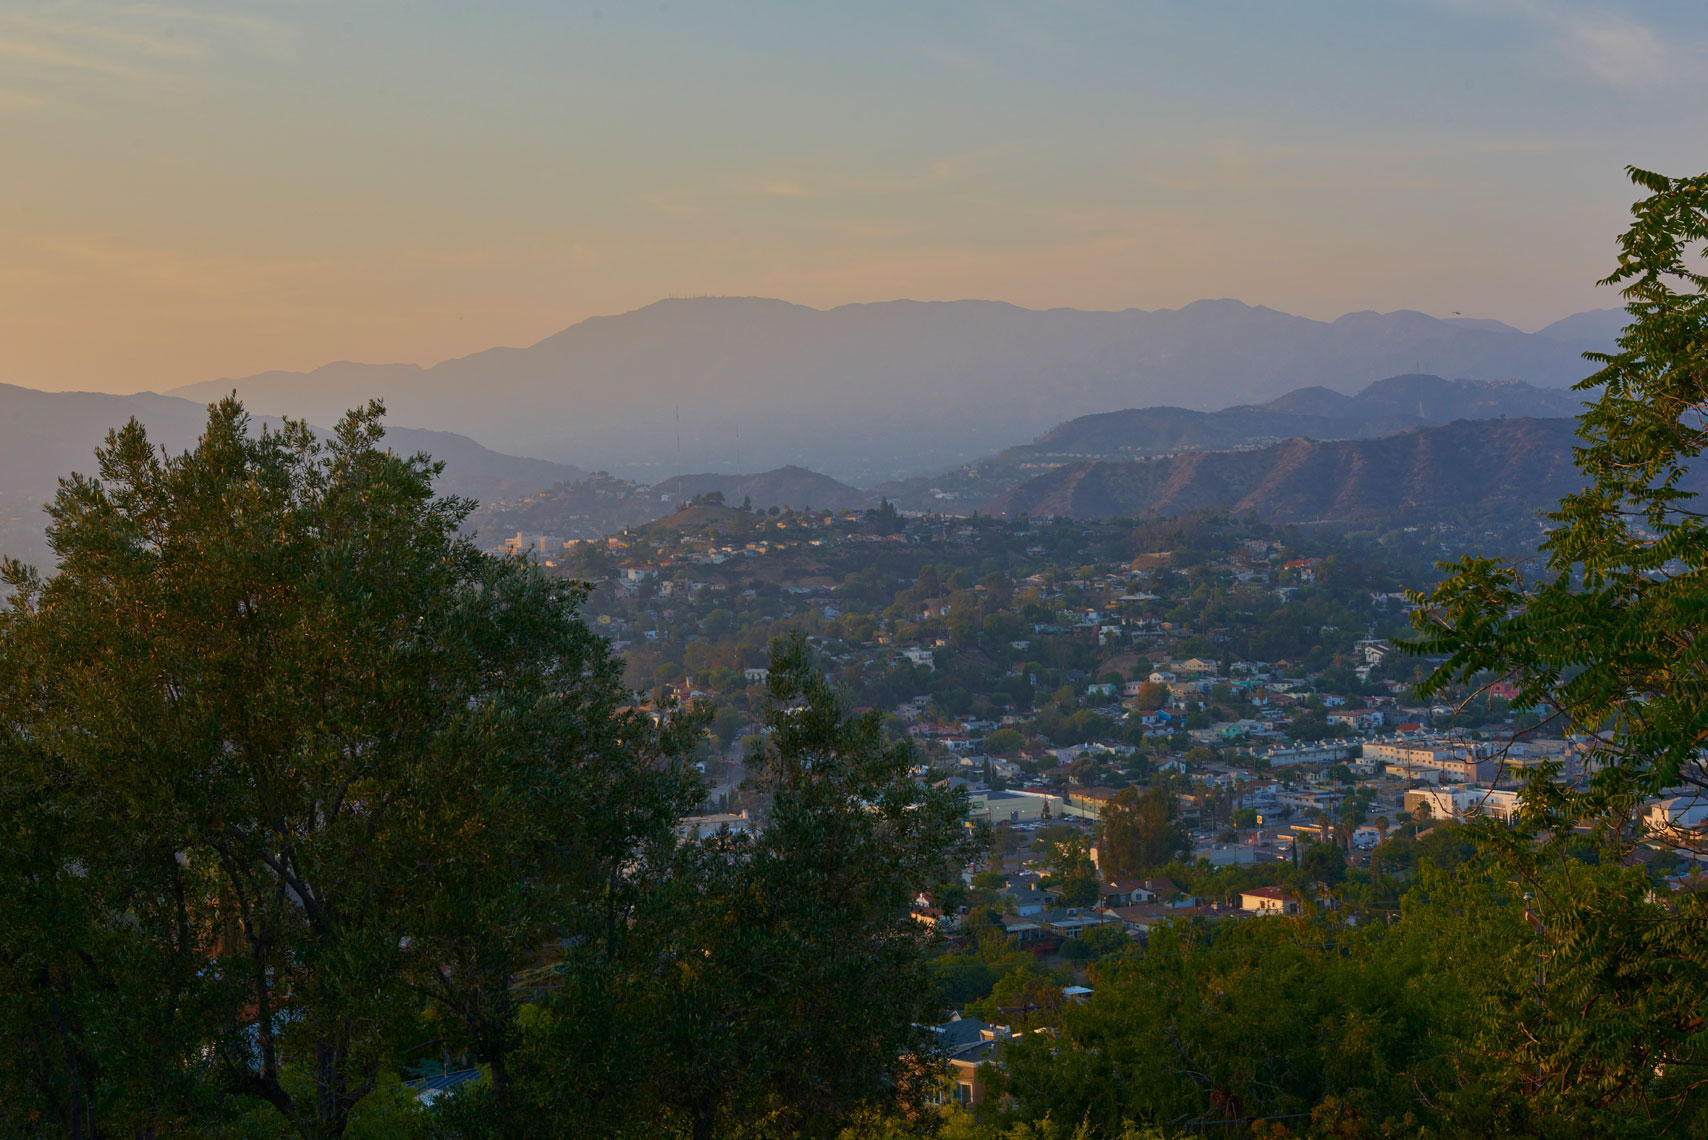 Los-angeles-homes-and-San-Gagrial-mountains-at-dusk-from-roof-top-deck-of--contemporary-home